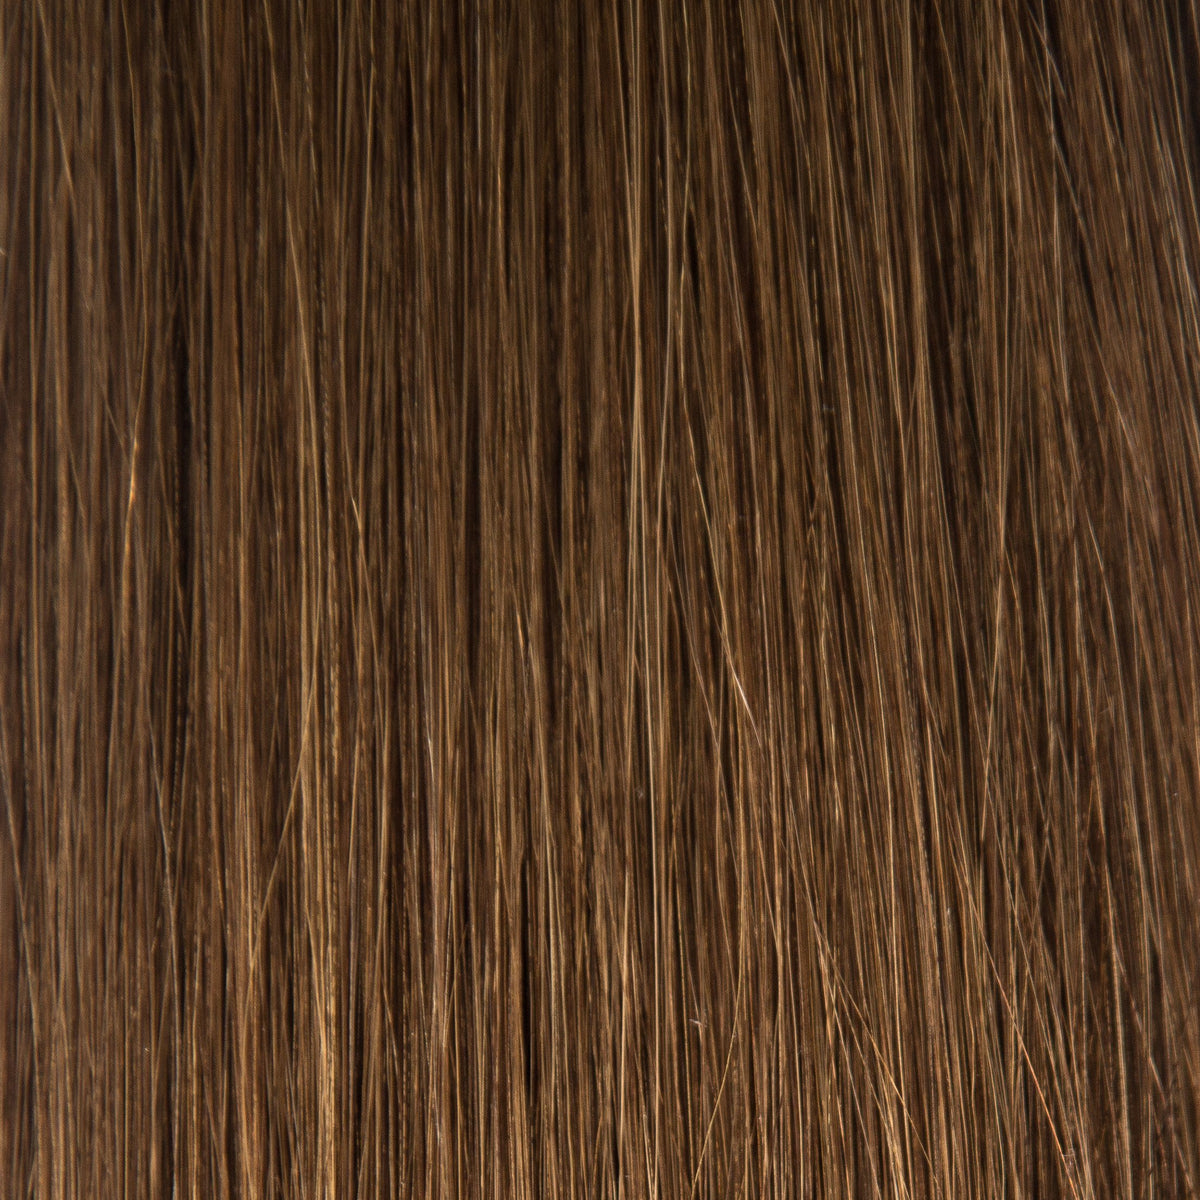 Machine_Sewn_Weft - Laced Hair Machine Sewn Weft Extensions #4